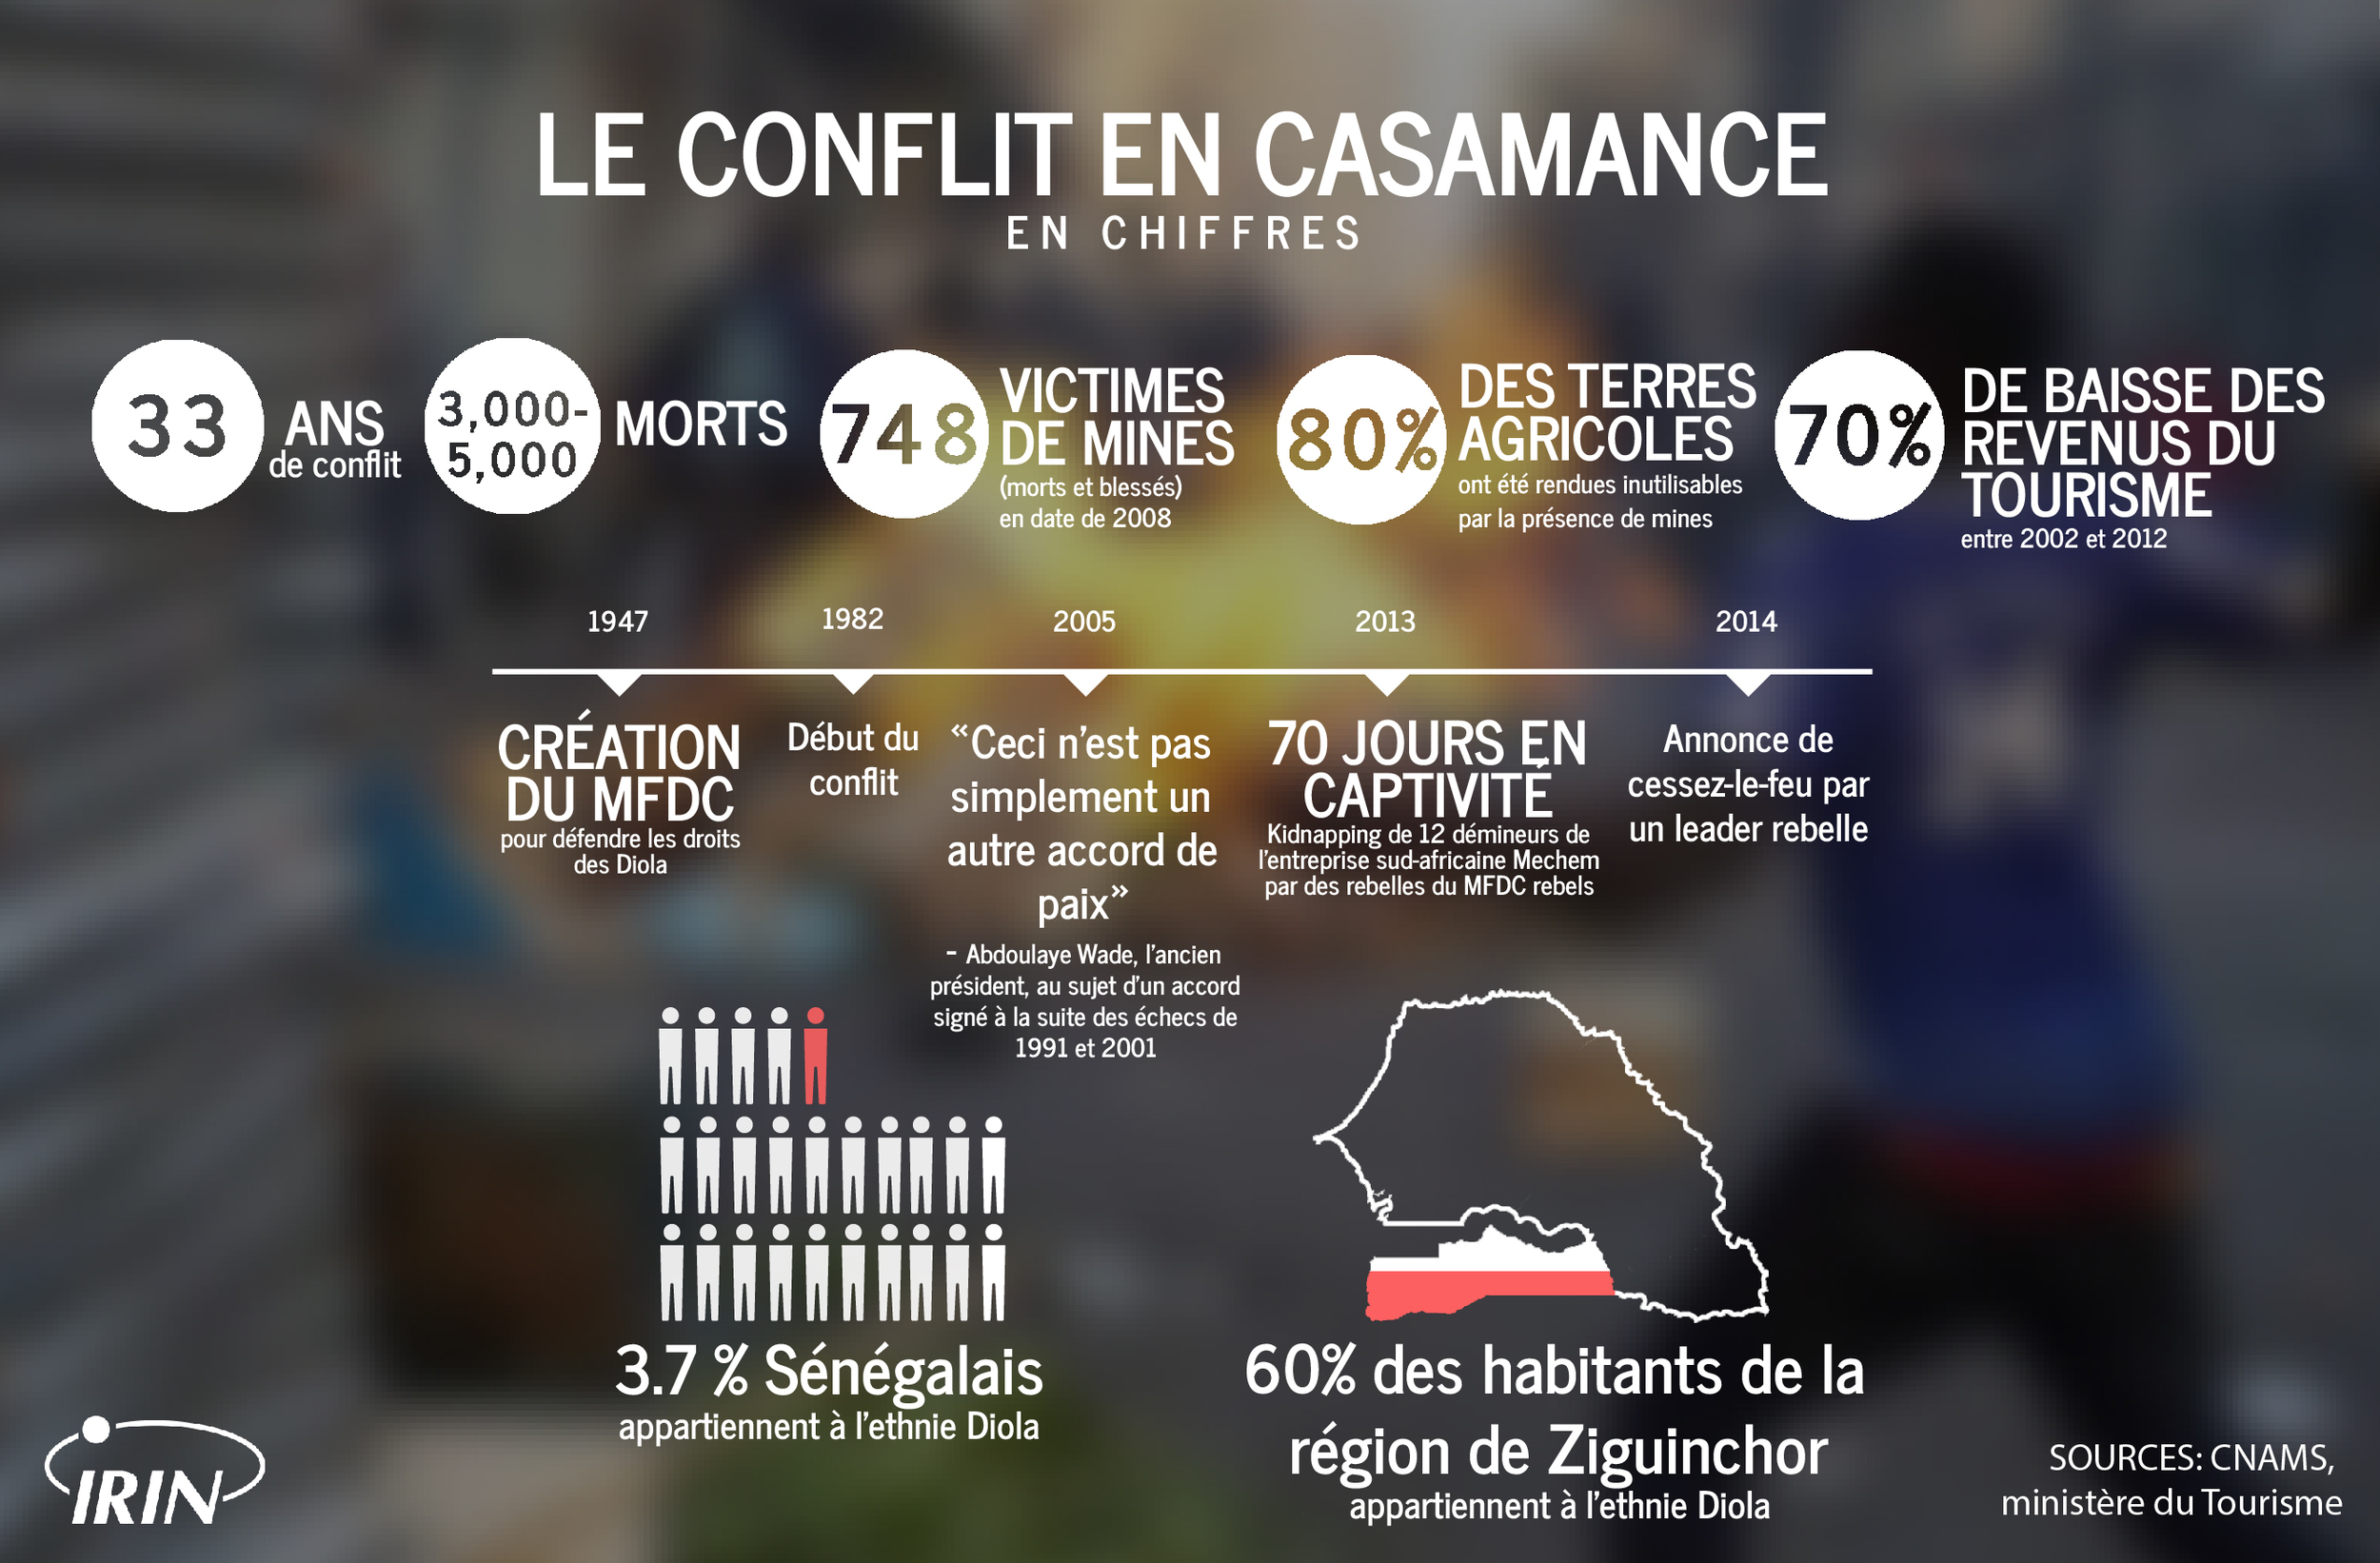 Casamance Conflict in Numbers (French)-01.jpg